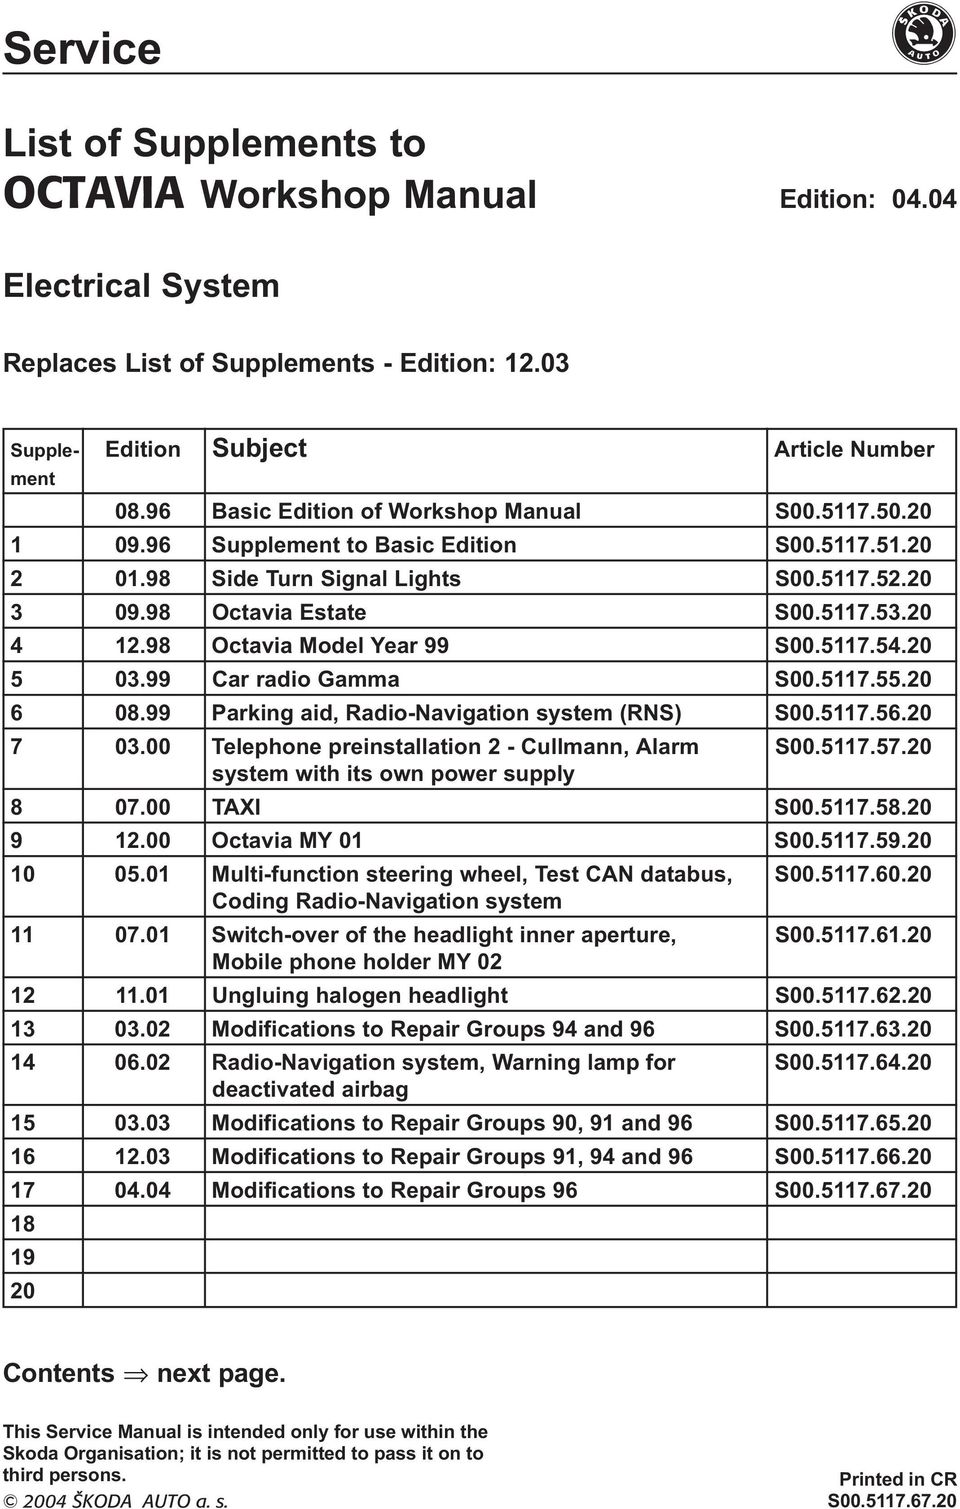 page_3?resize\\\=665%2C1045 car stereo wiring diagram clarion dxz655mp wiring diagrams clarion dxz655mp wiring diagram at bakdesigns.co